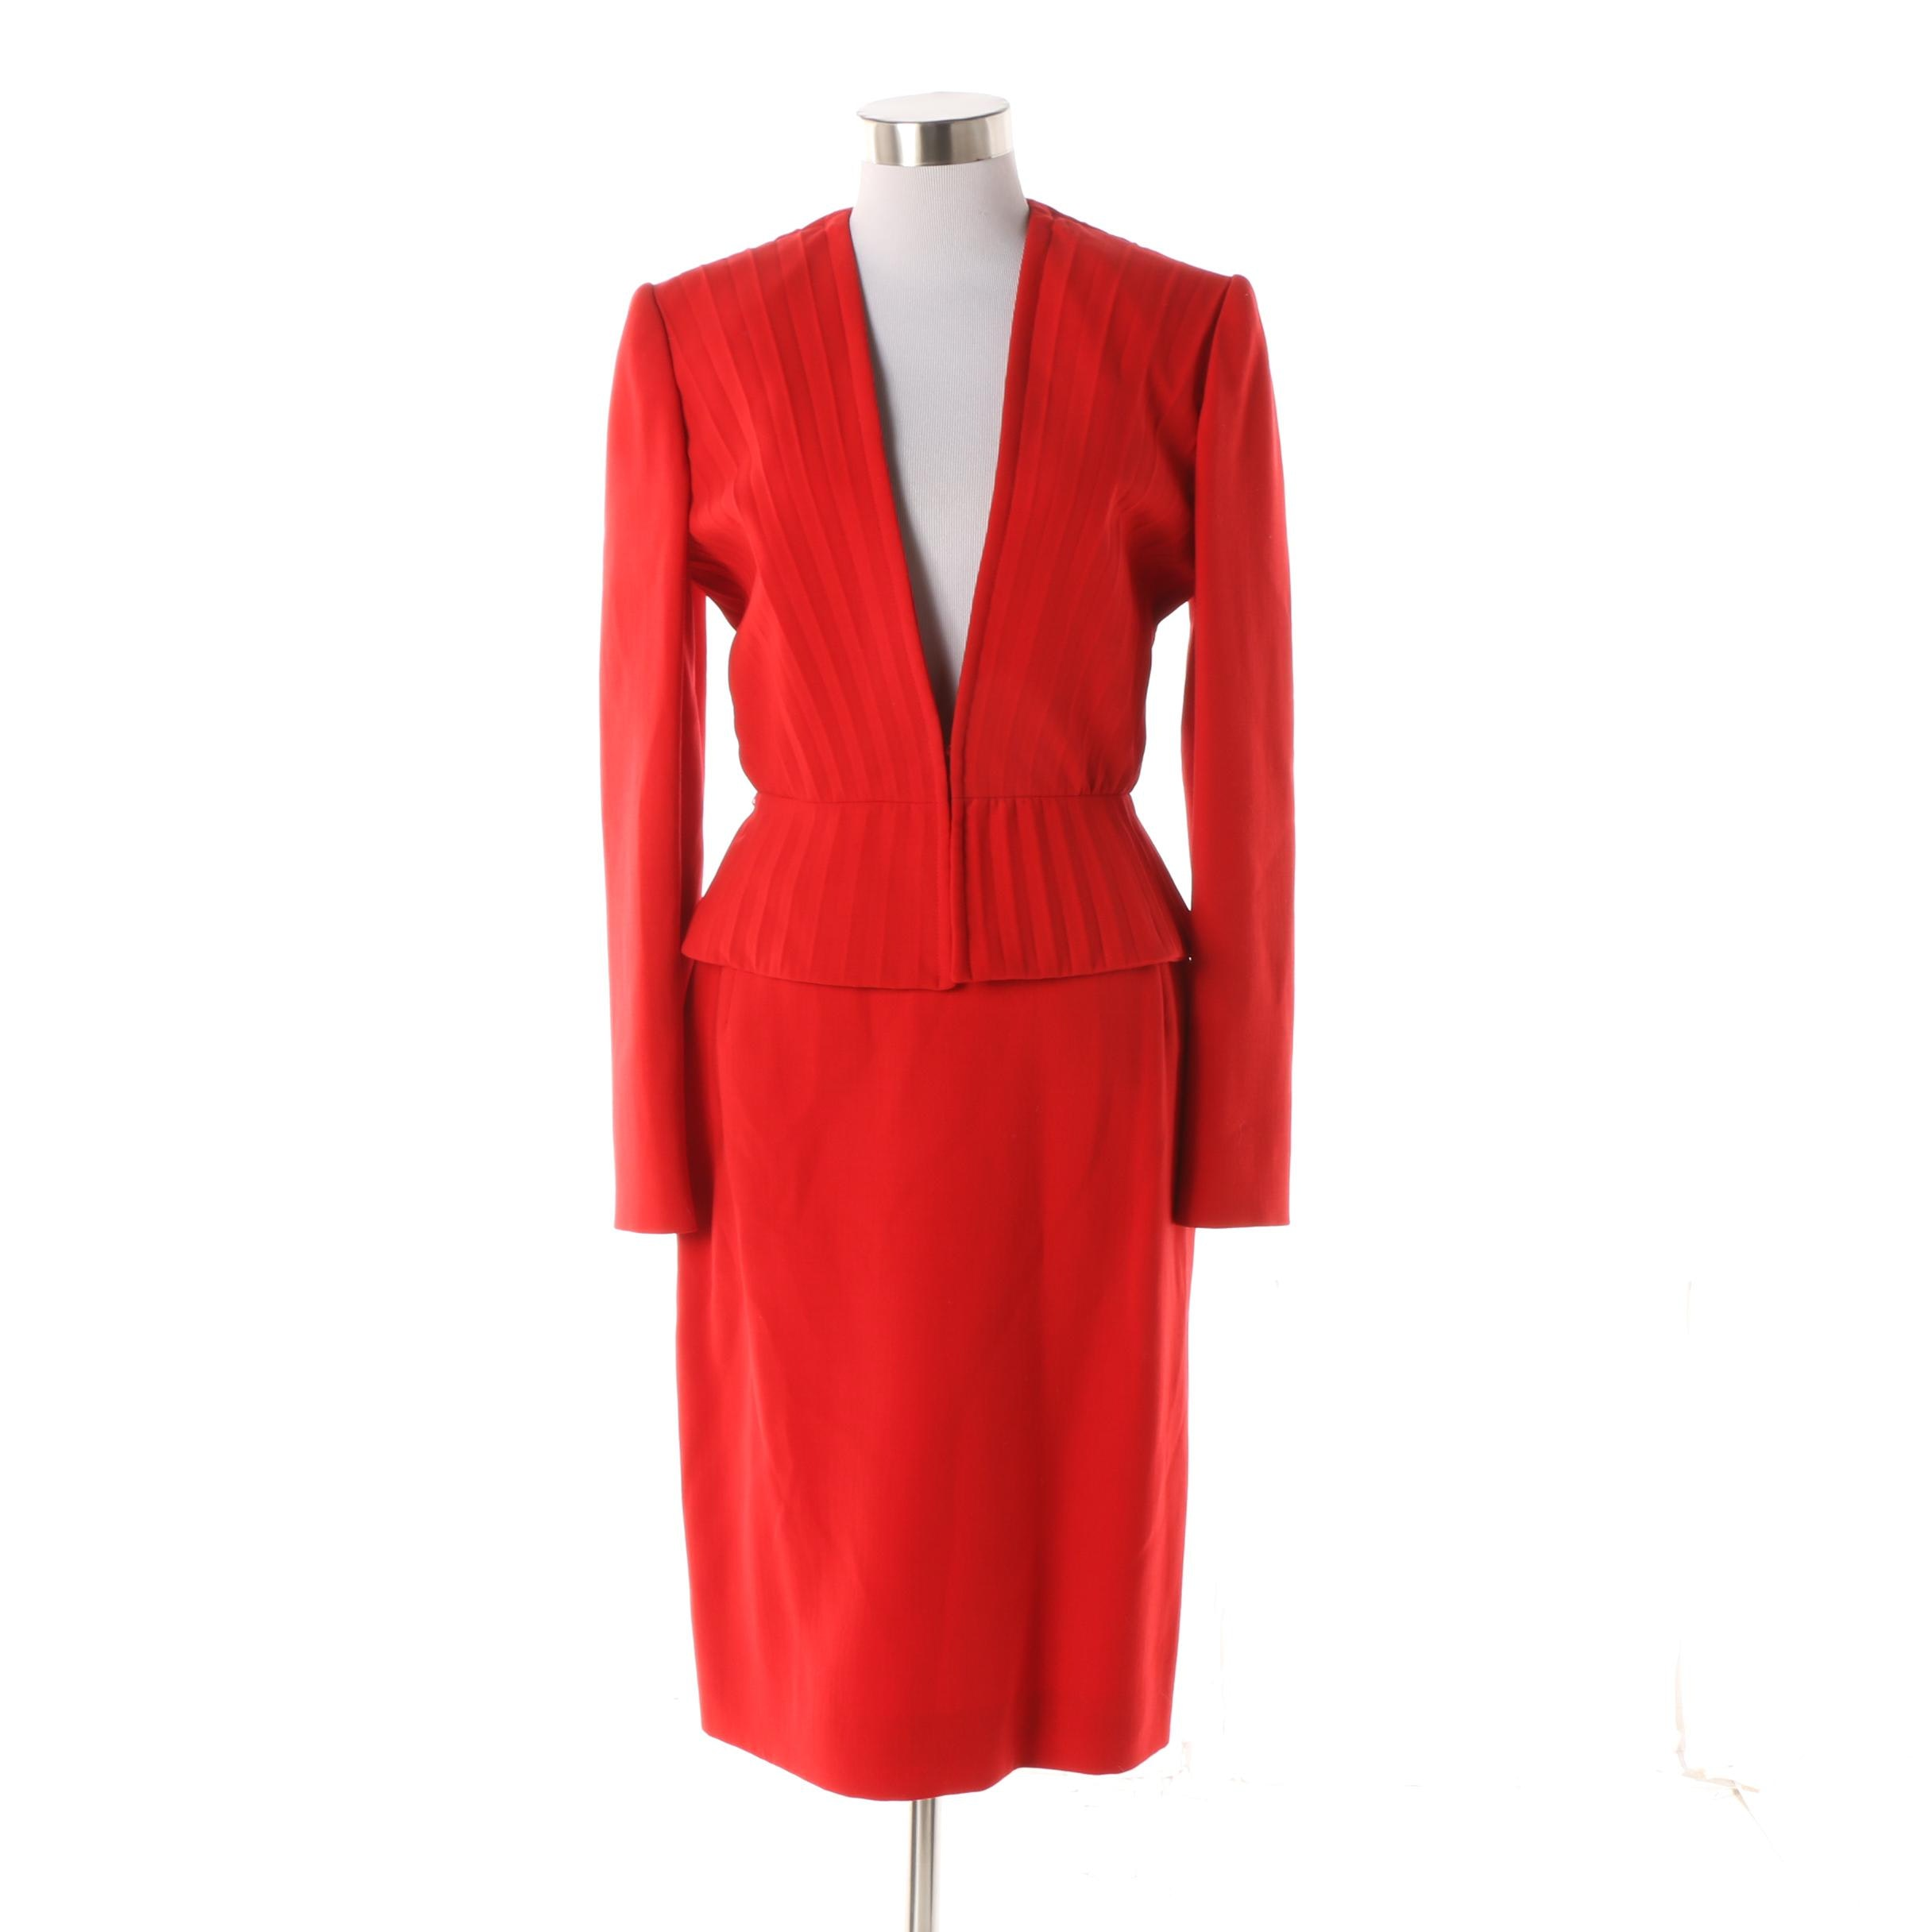 Women's Circa 2000 Valentino Red Plunging V-Cut Wool Skirt Suit